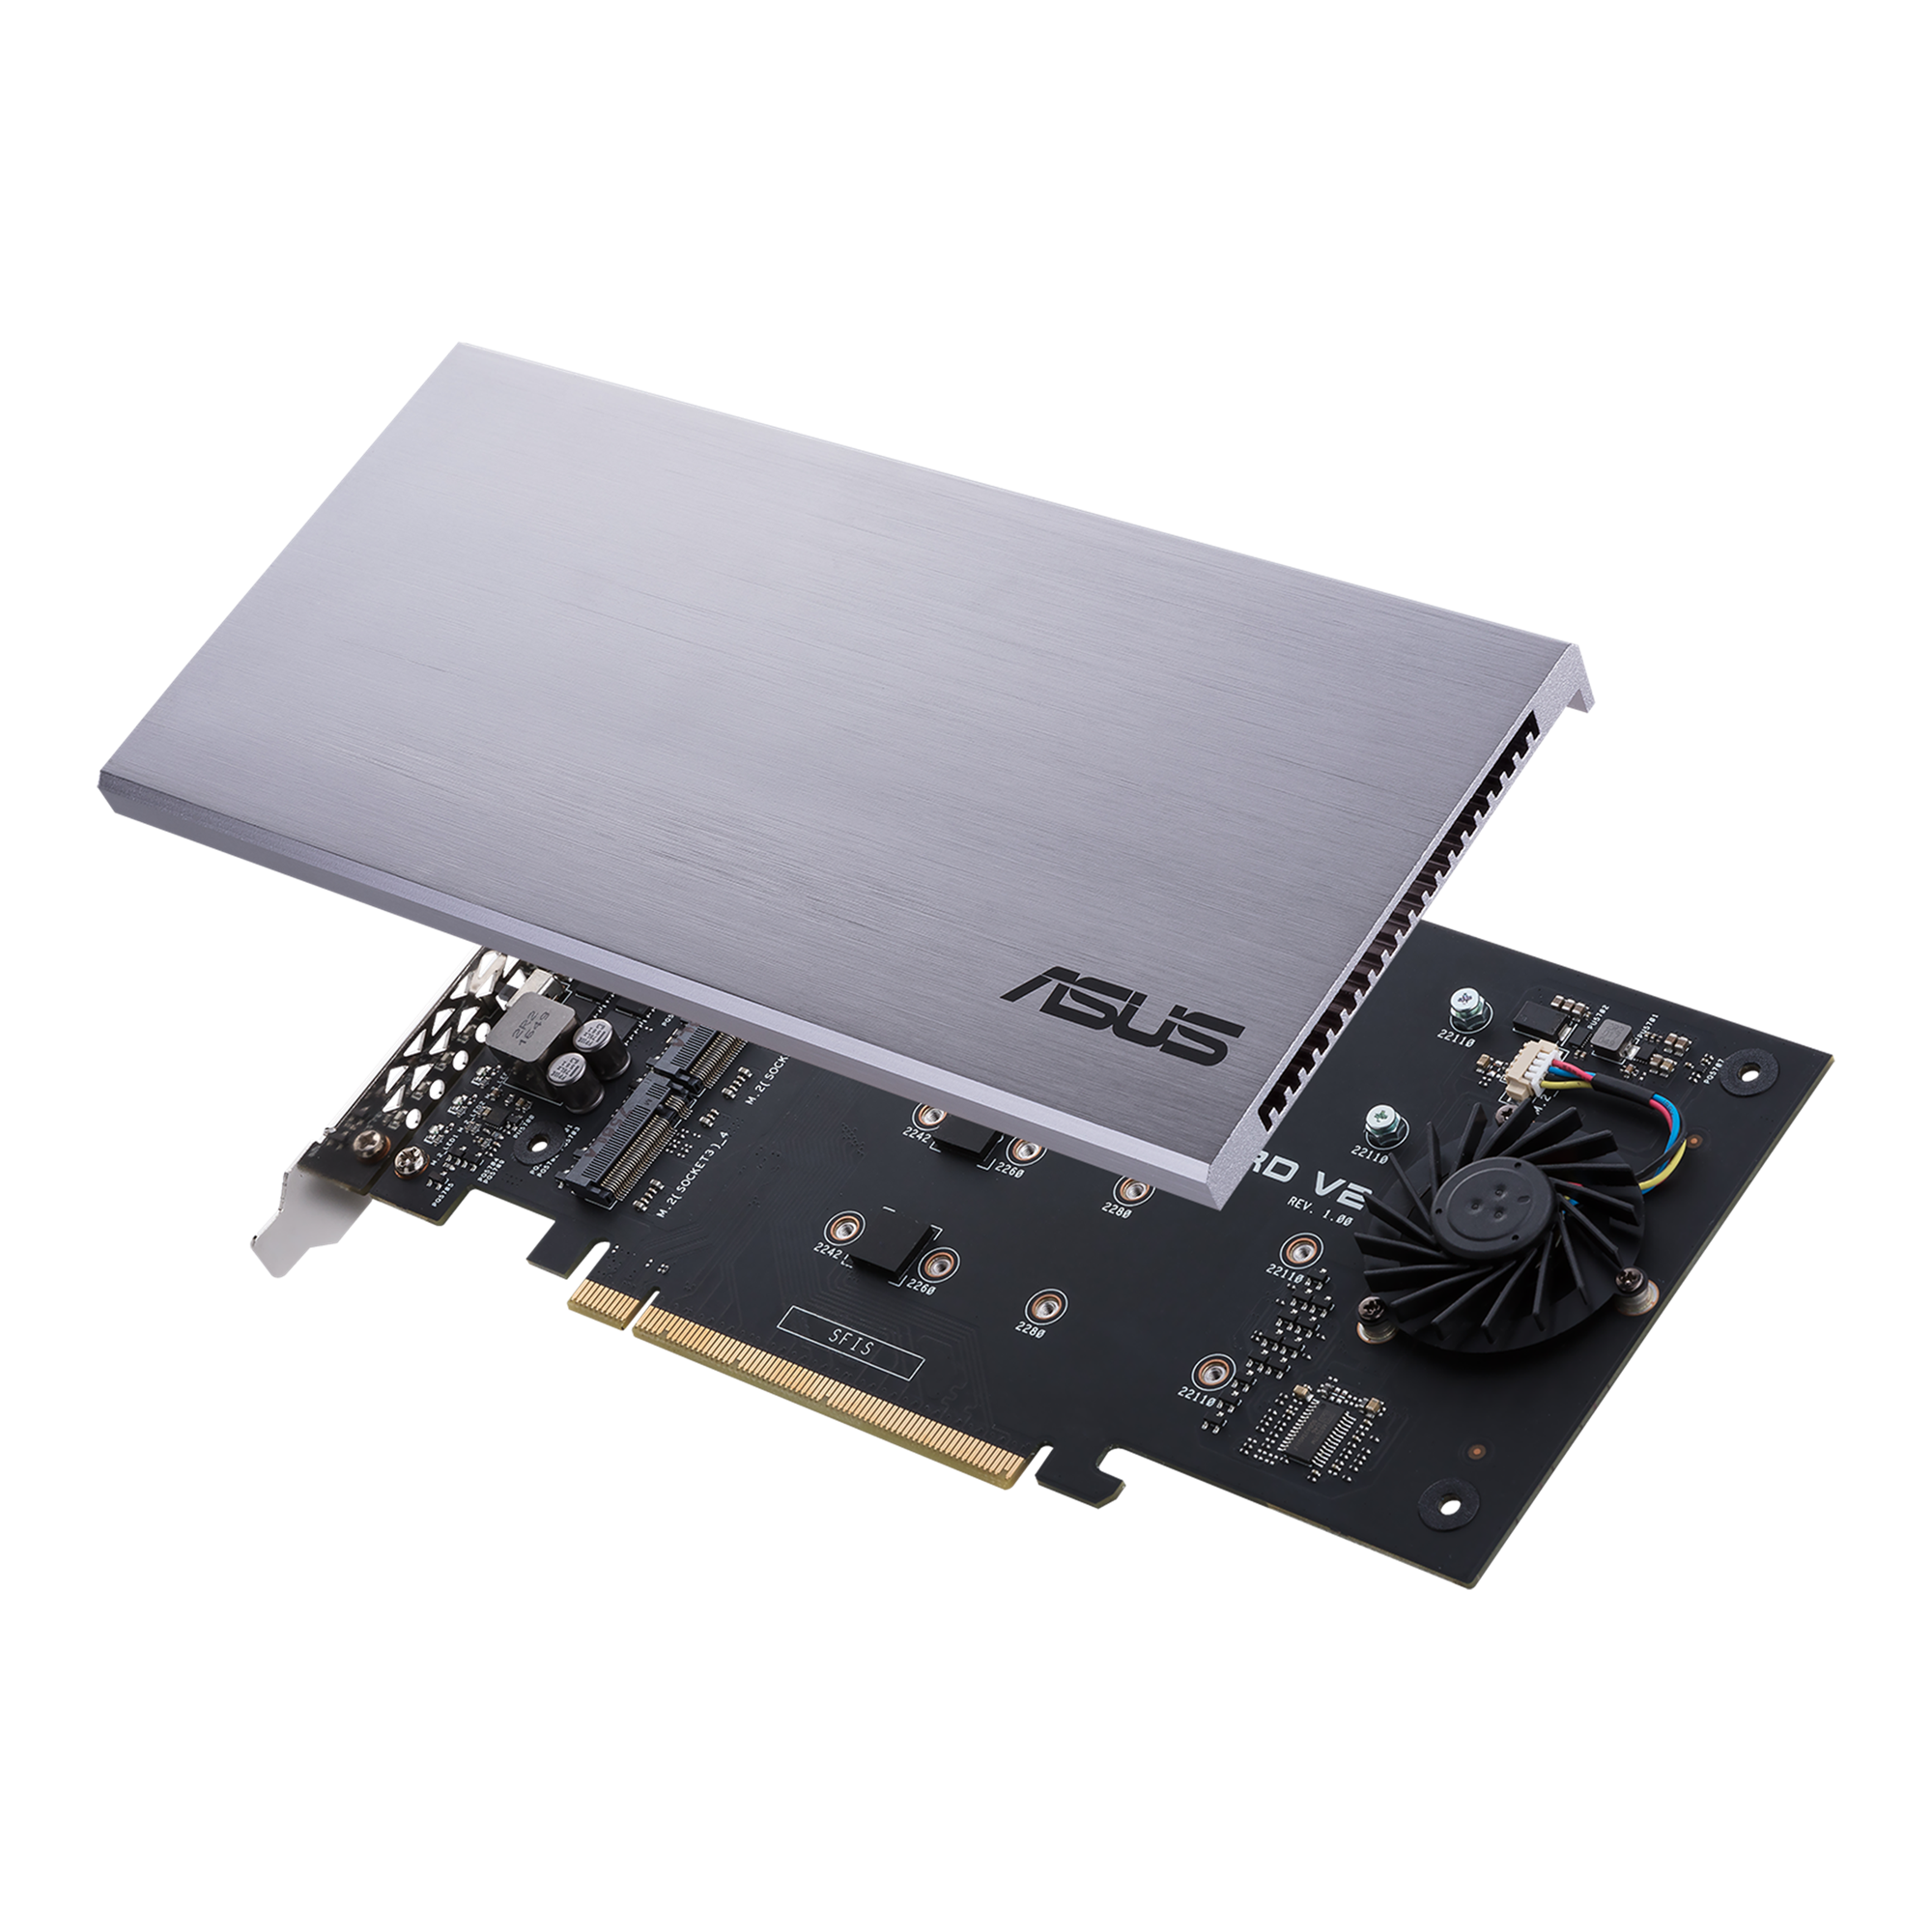 for Prime B250M-C//CSM 3.1 x4 Arch Memory Pro Series Upgrade for Asus 256 GB M.2 2280 PCIe TLC NVMe Solid State Drive